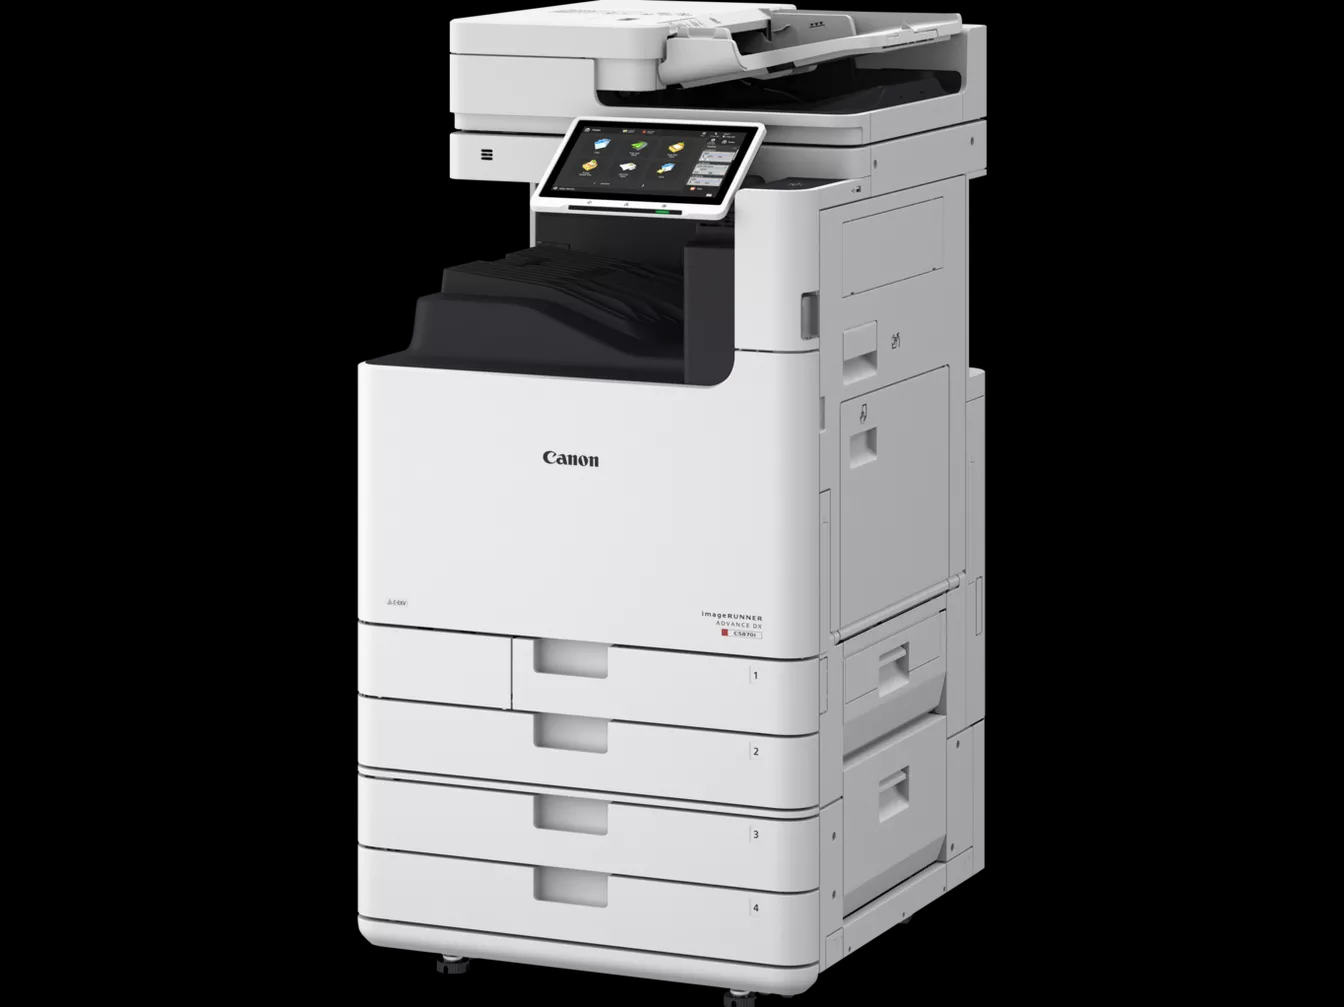 Canon ImageRUNNER advance DX C5870i A3 Colour MFD photocopier Printer